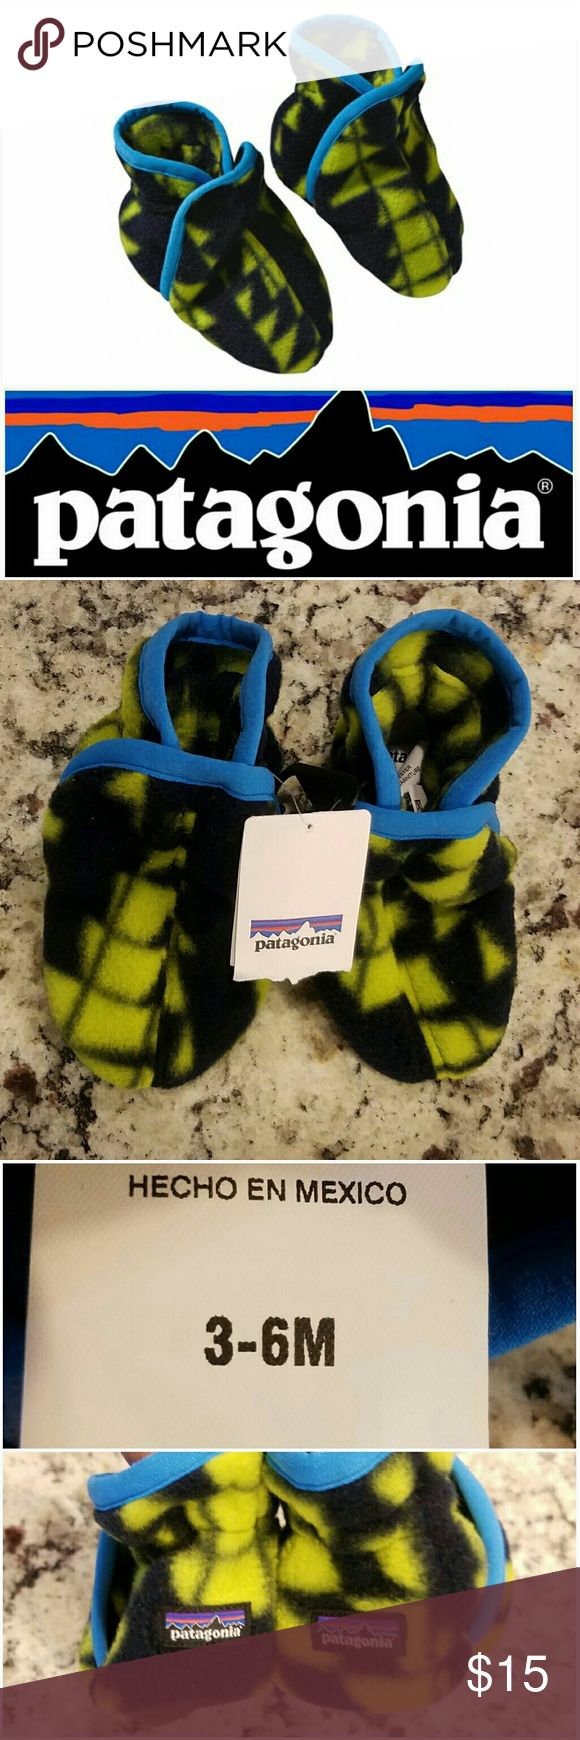 Patagonia Synchilla Baby Booties New. Size 3-6 months.  -Warm polyester double-faced fleece in upper (solids with 85% recycled content); sole has a skid-free nylon/spandex/polyurethane jersey fabric  -Elasticized pull-on booties stay-put around ankle for a secure fit  -2-layer sole construction gives foot extra cushion and nonslip safety. Patagonia Shoes